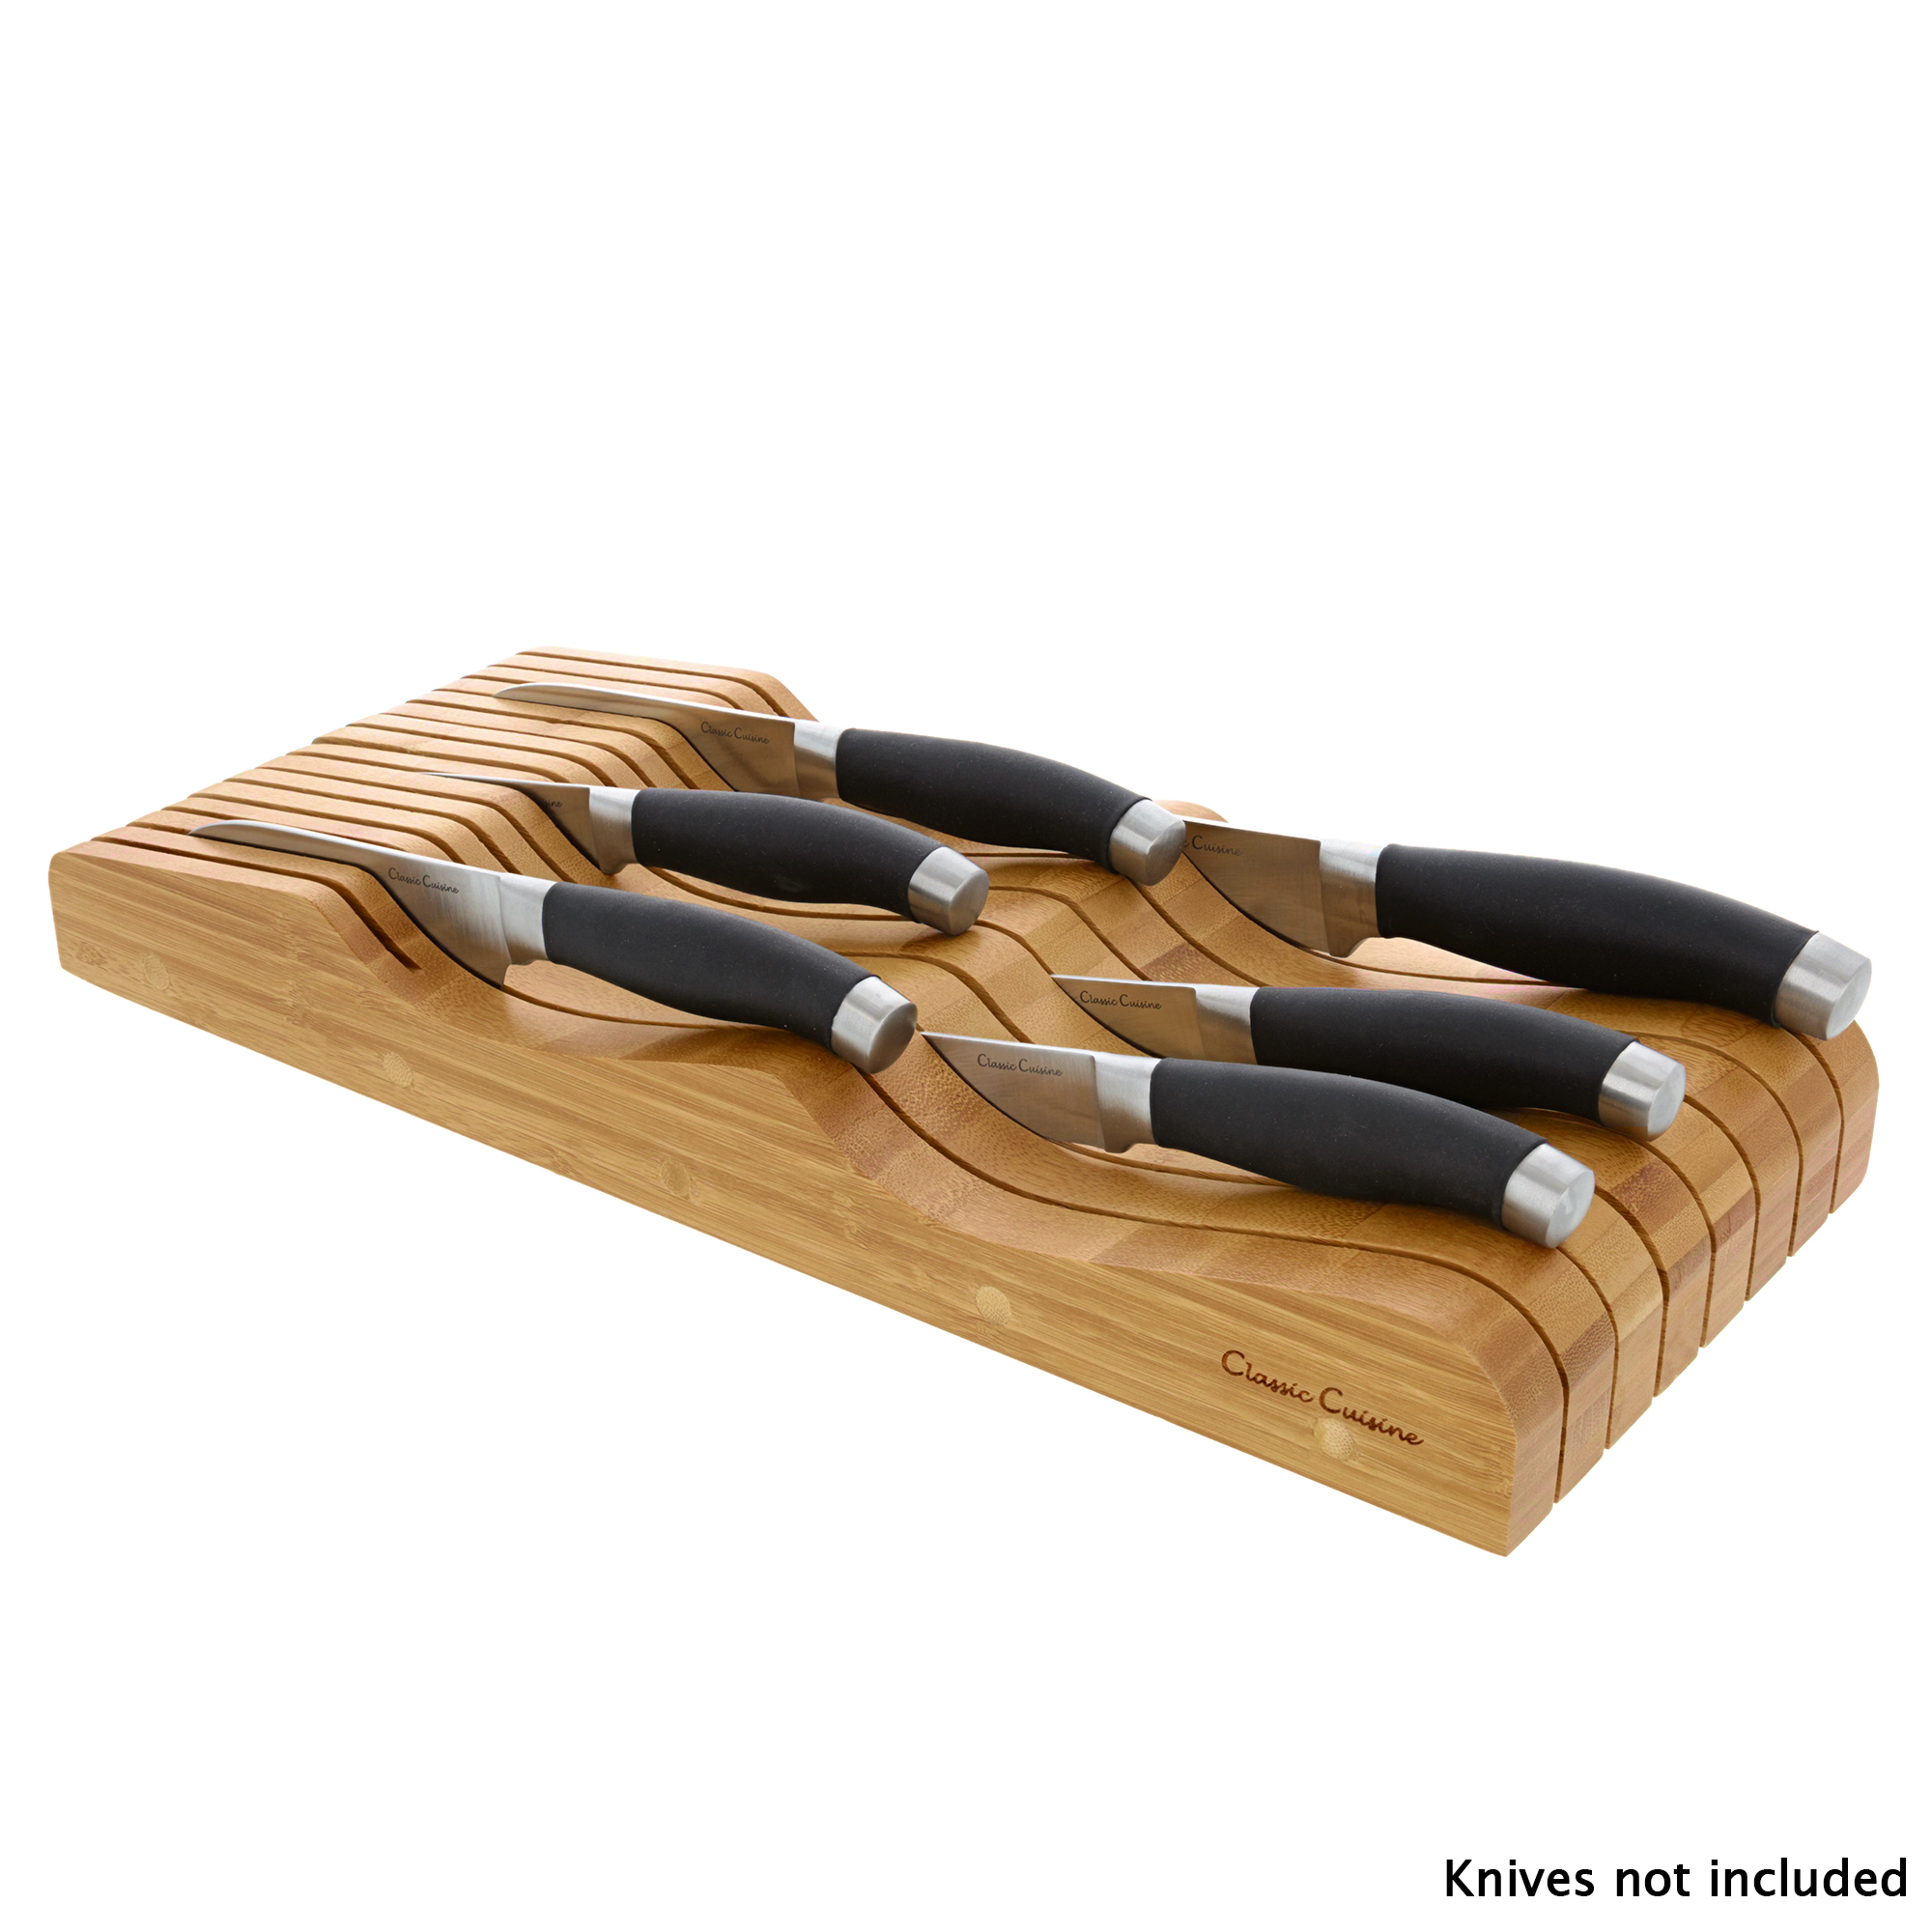 In Drawer Bamboo Knife Block and Cutlery Storage Organizer, Holds up to 15 Knives – Bacteria Resistant and Protects Blades by Classic Cuisine